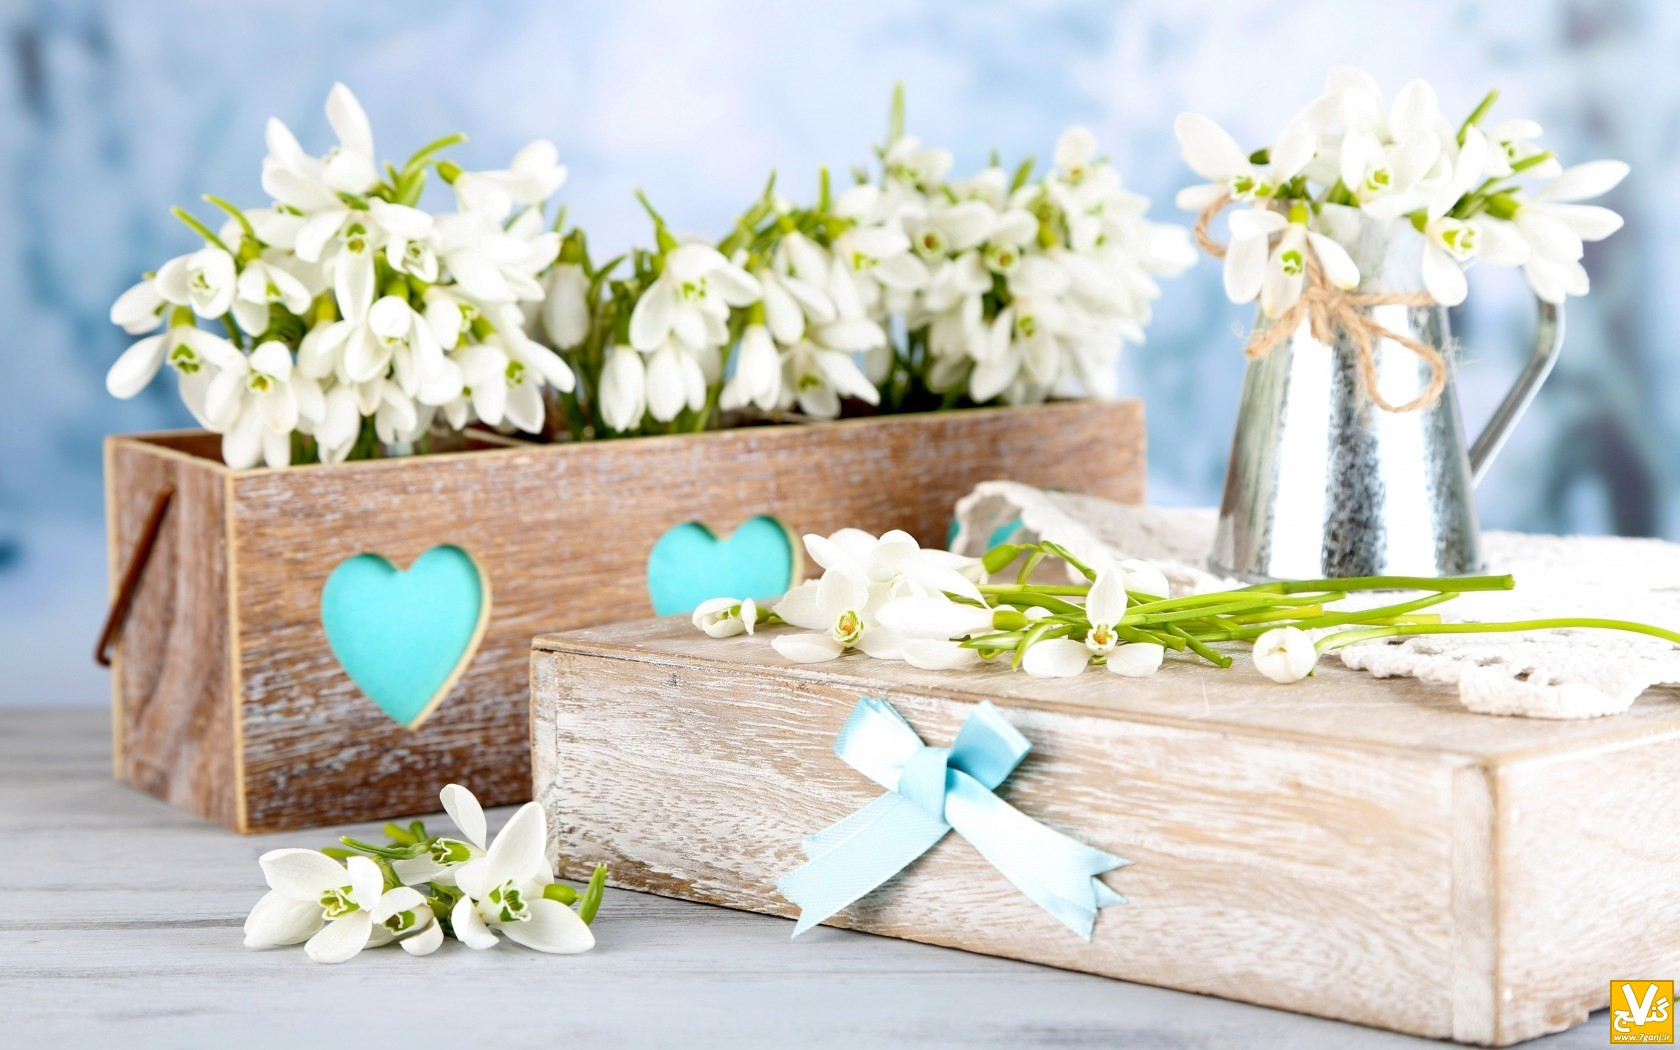 spring-snowdrops-flowers-bouquet-wallpaper-1680x1050